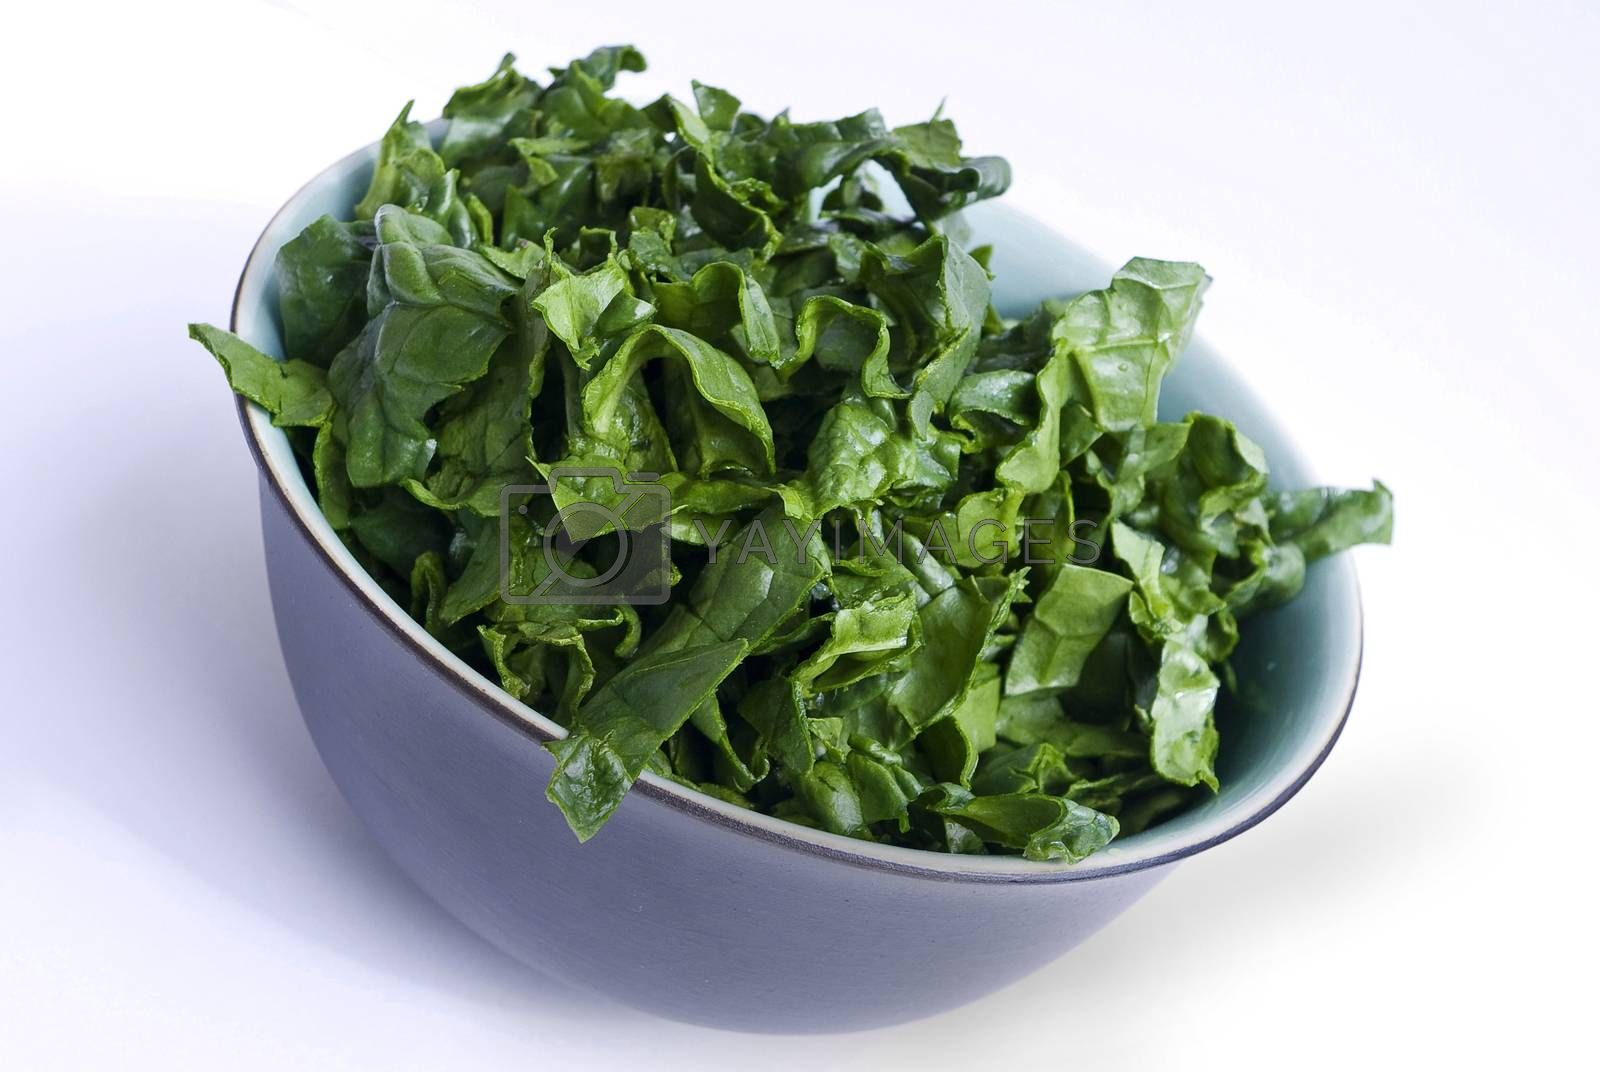 fresh spinach in a nice bowl on white background